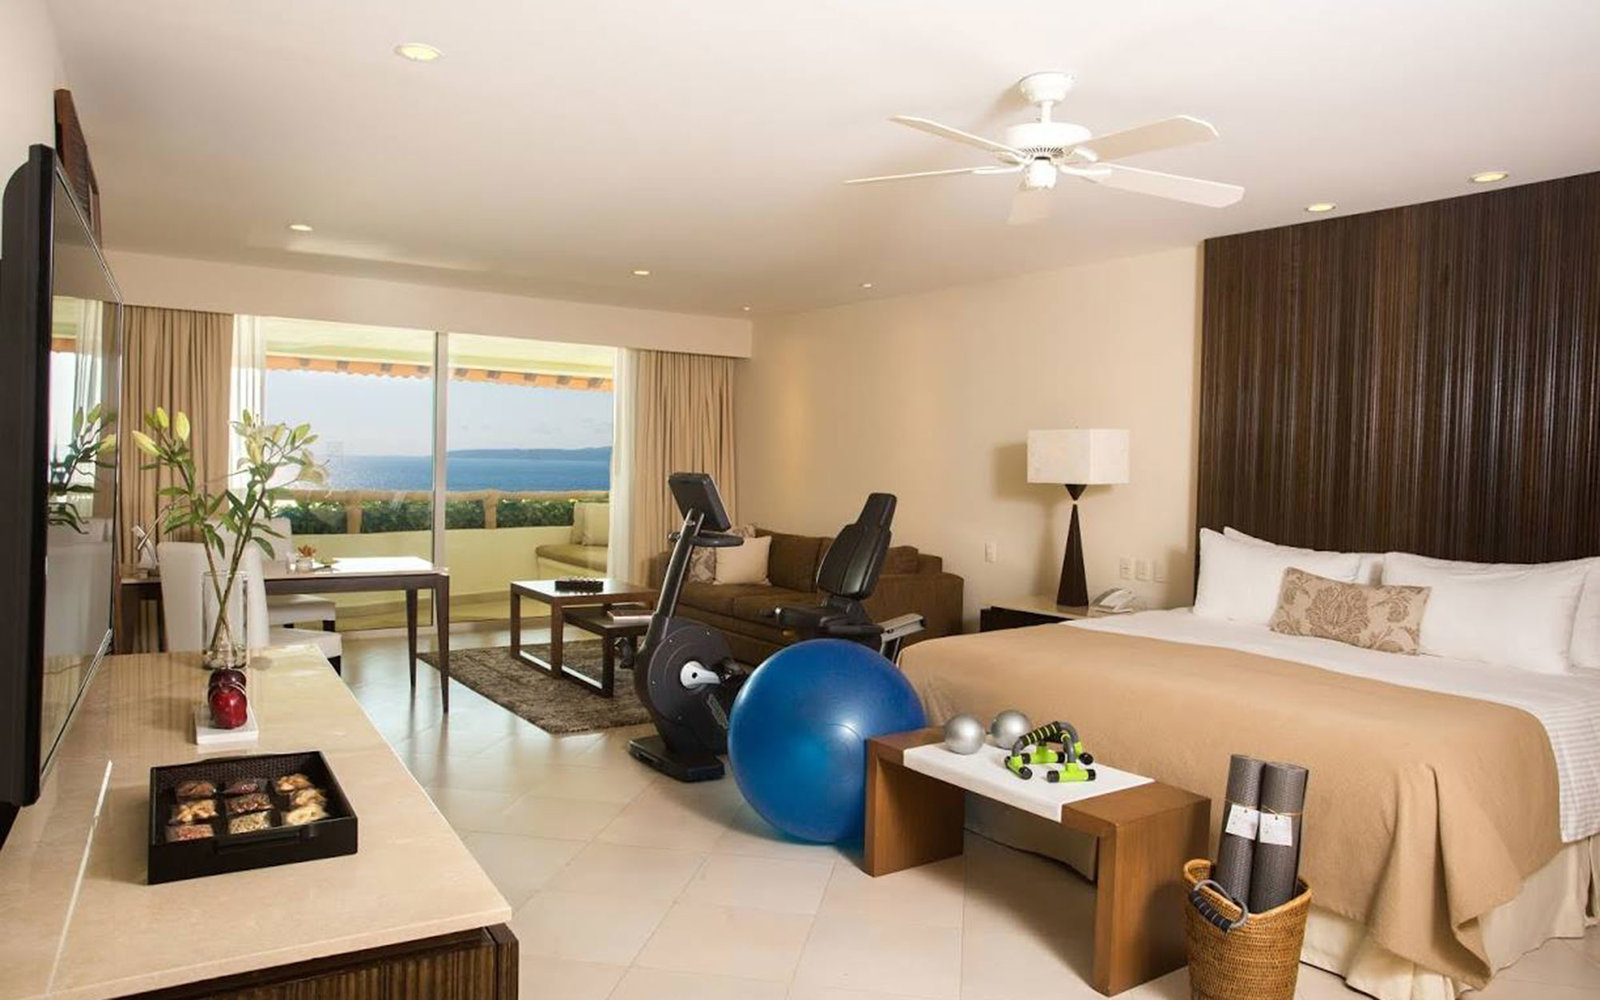 Grand-Velas-Riviera-Nayarit-Mexico-FIT0116.jpg